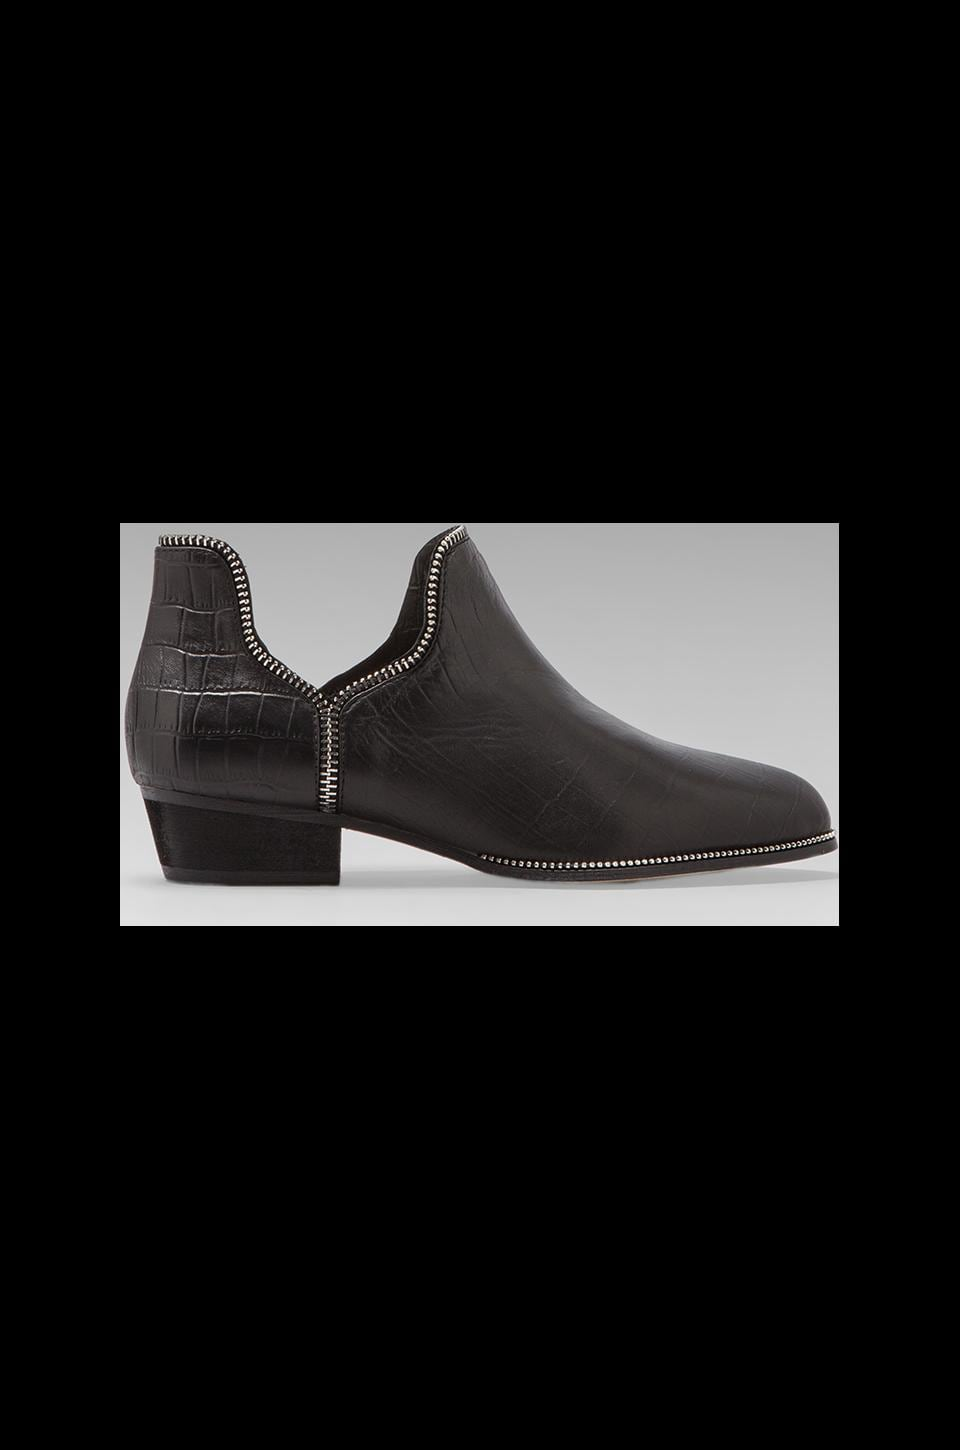 SENSO Bertie II Boot in Black